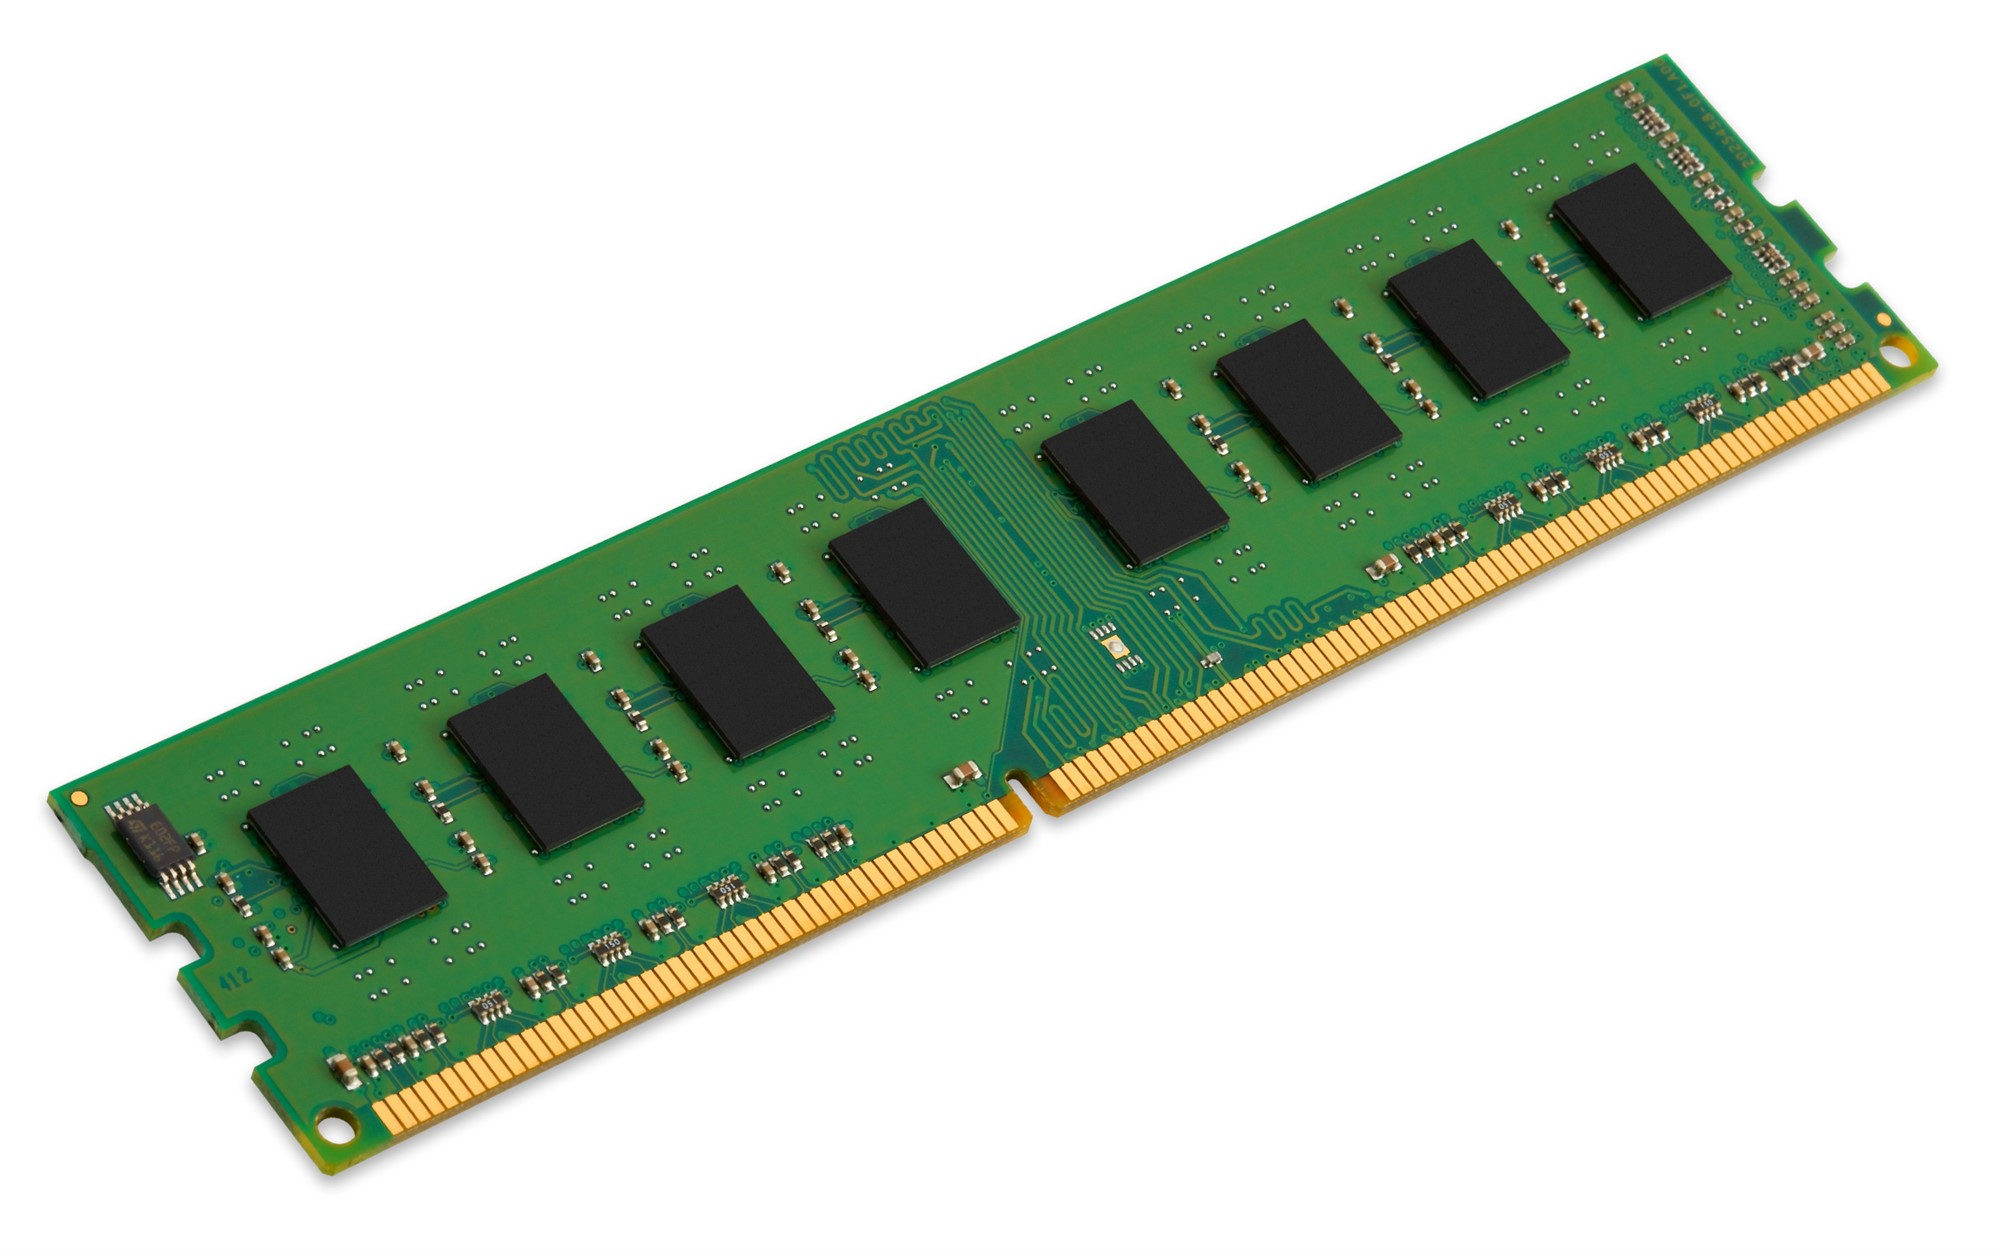 KINGSTON VALUERAM 4GB DDR3-1600 DDR3 1600MHZ MEMORY MODULE